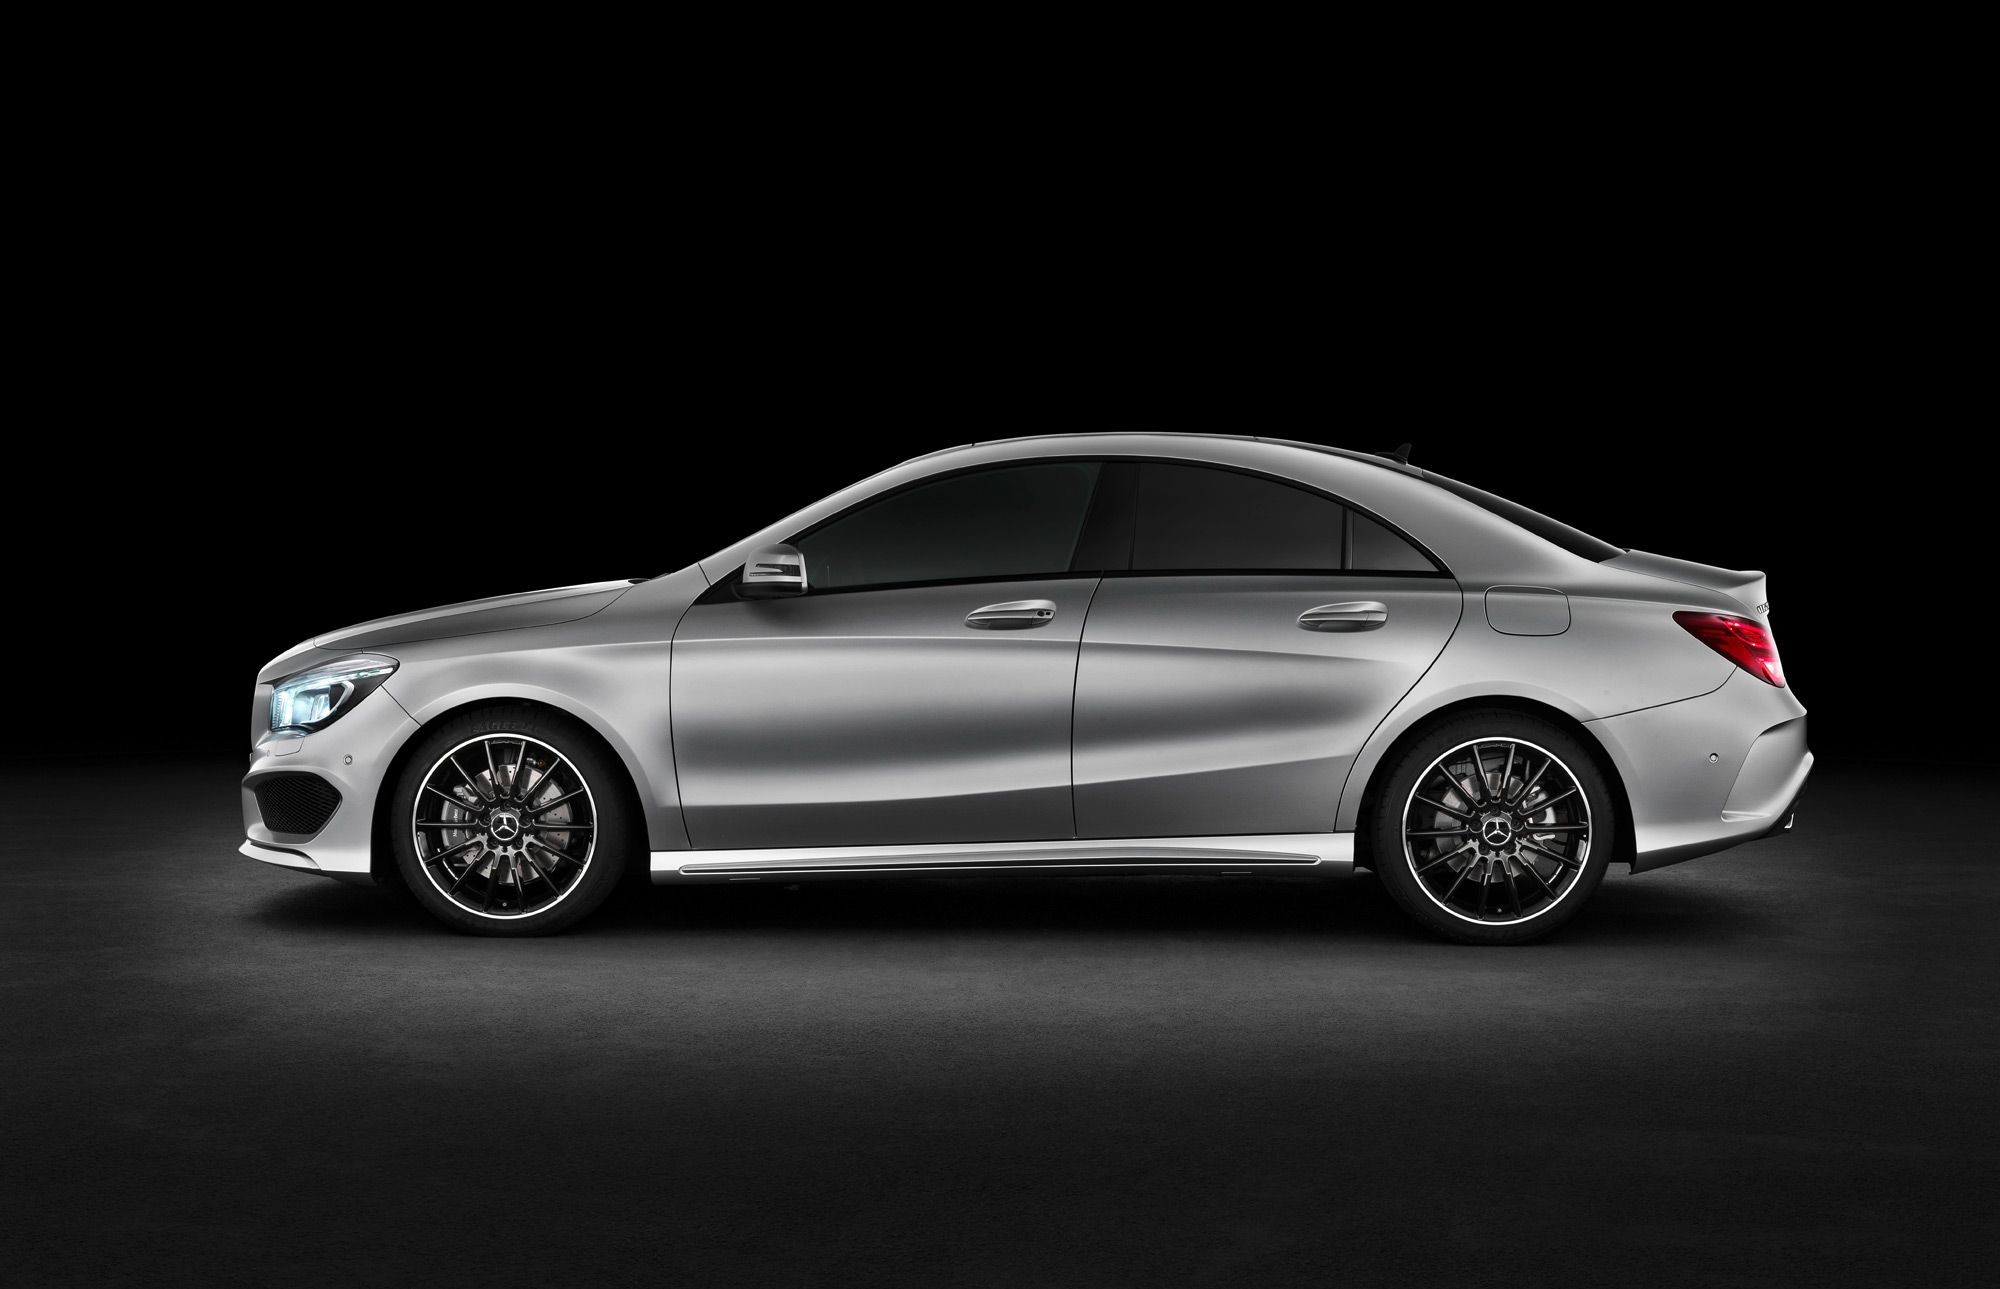 2014 mercedes benz cla 250 face lifts car wallpaper hd car